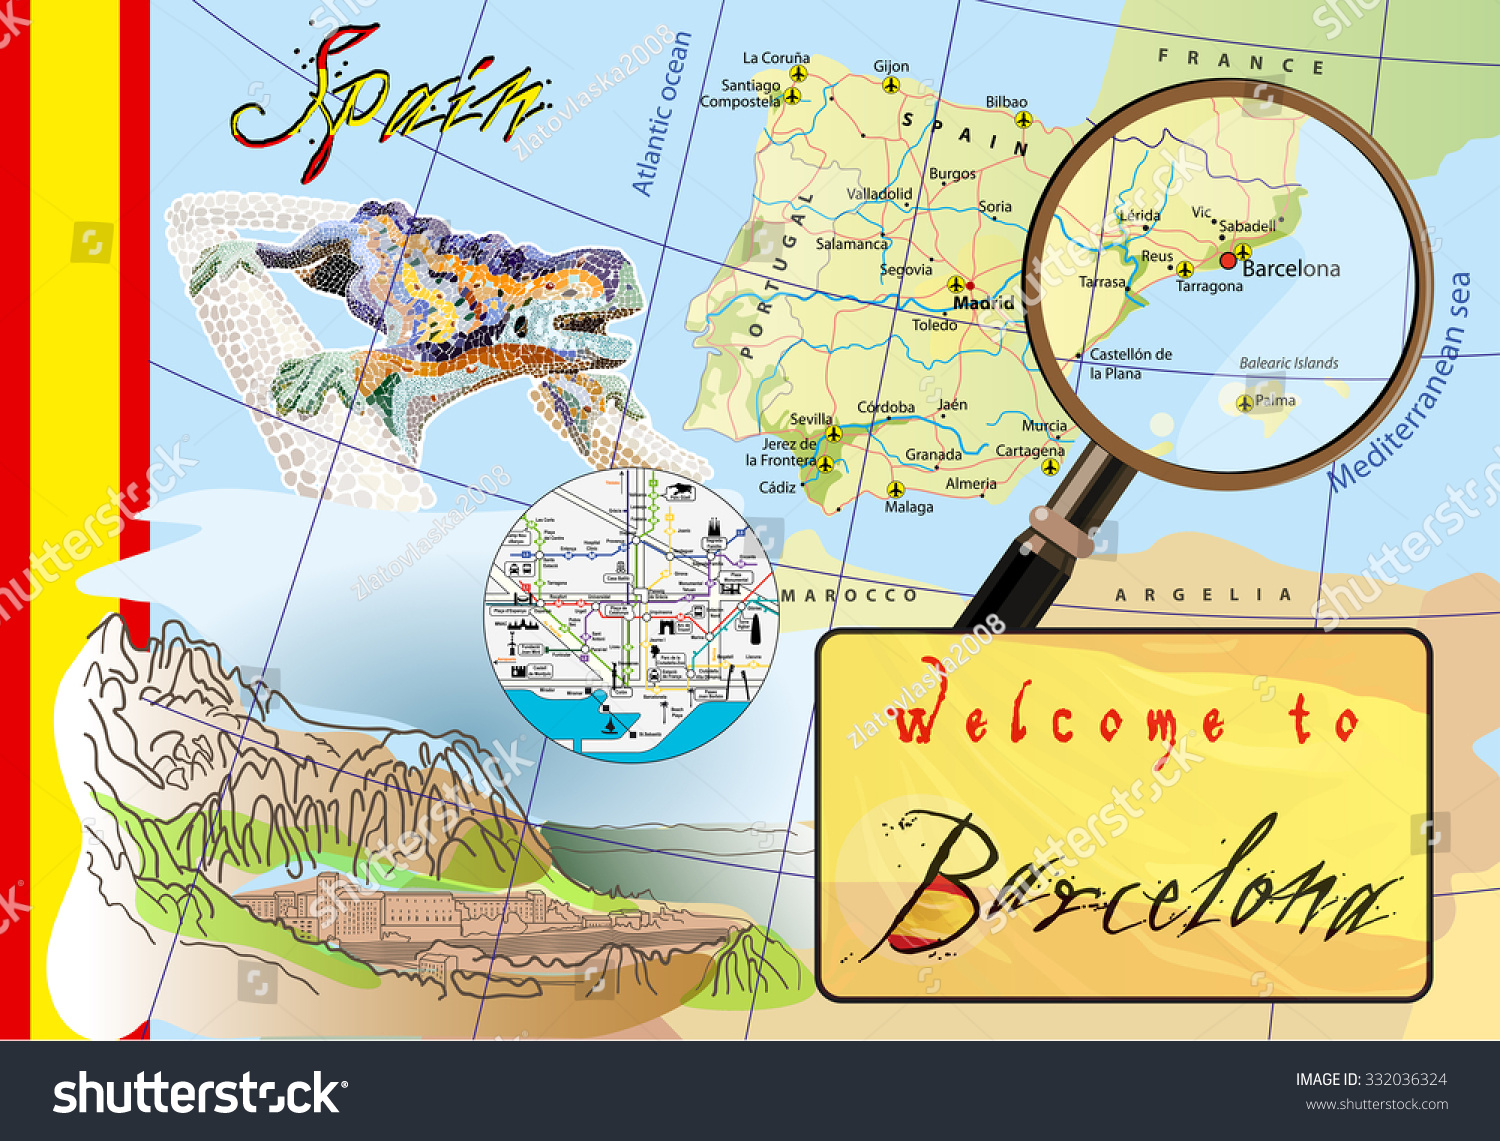 Welcome Barcelona Attractions On Map Stock Photo Photo Vector